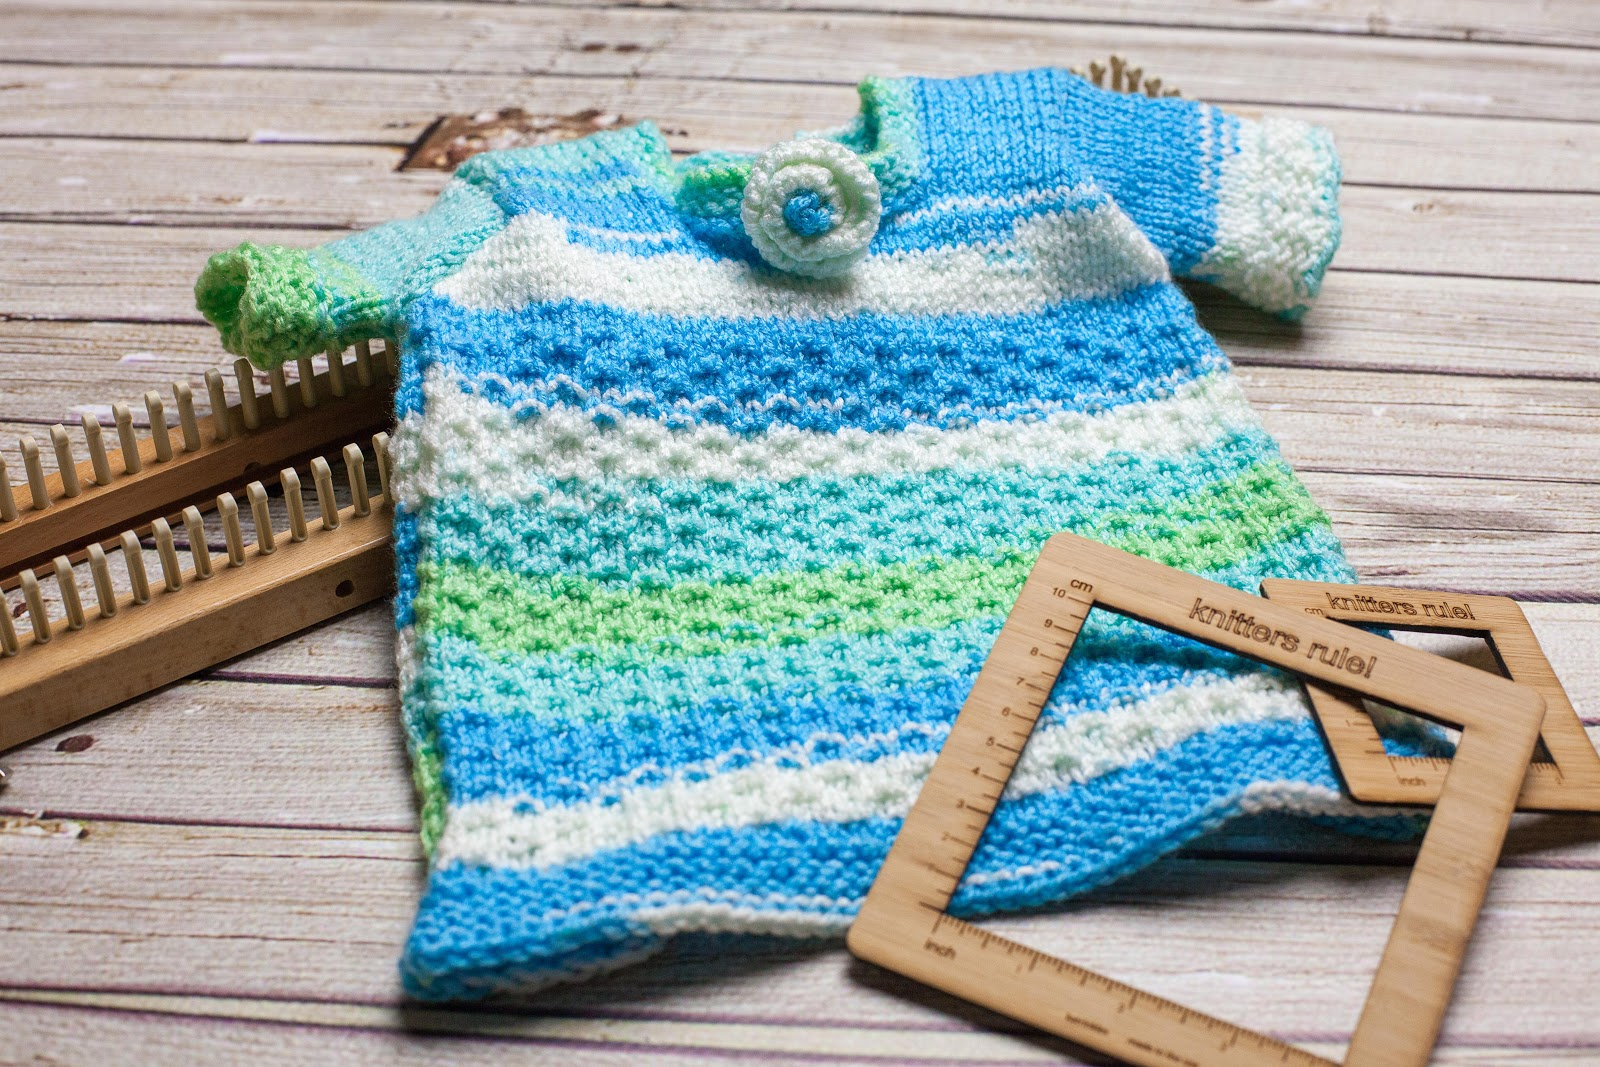 color pooling, stripes, simple color changes, loom knitting, using variegated yarn